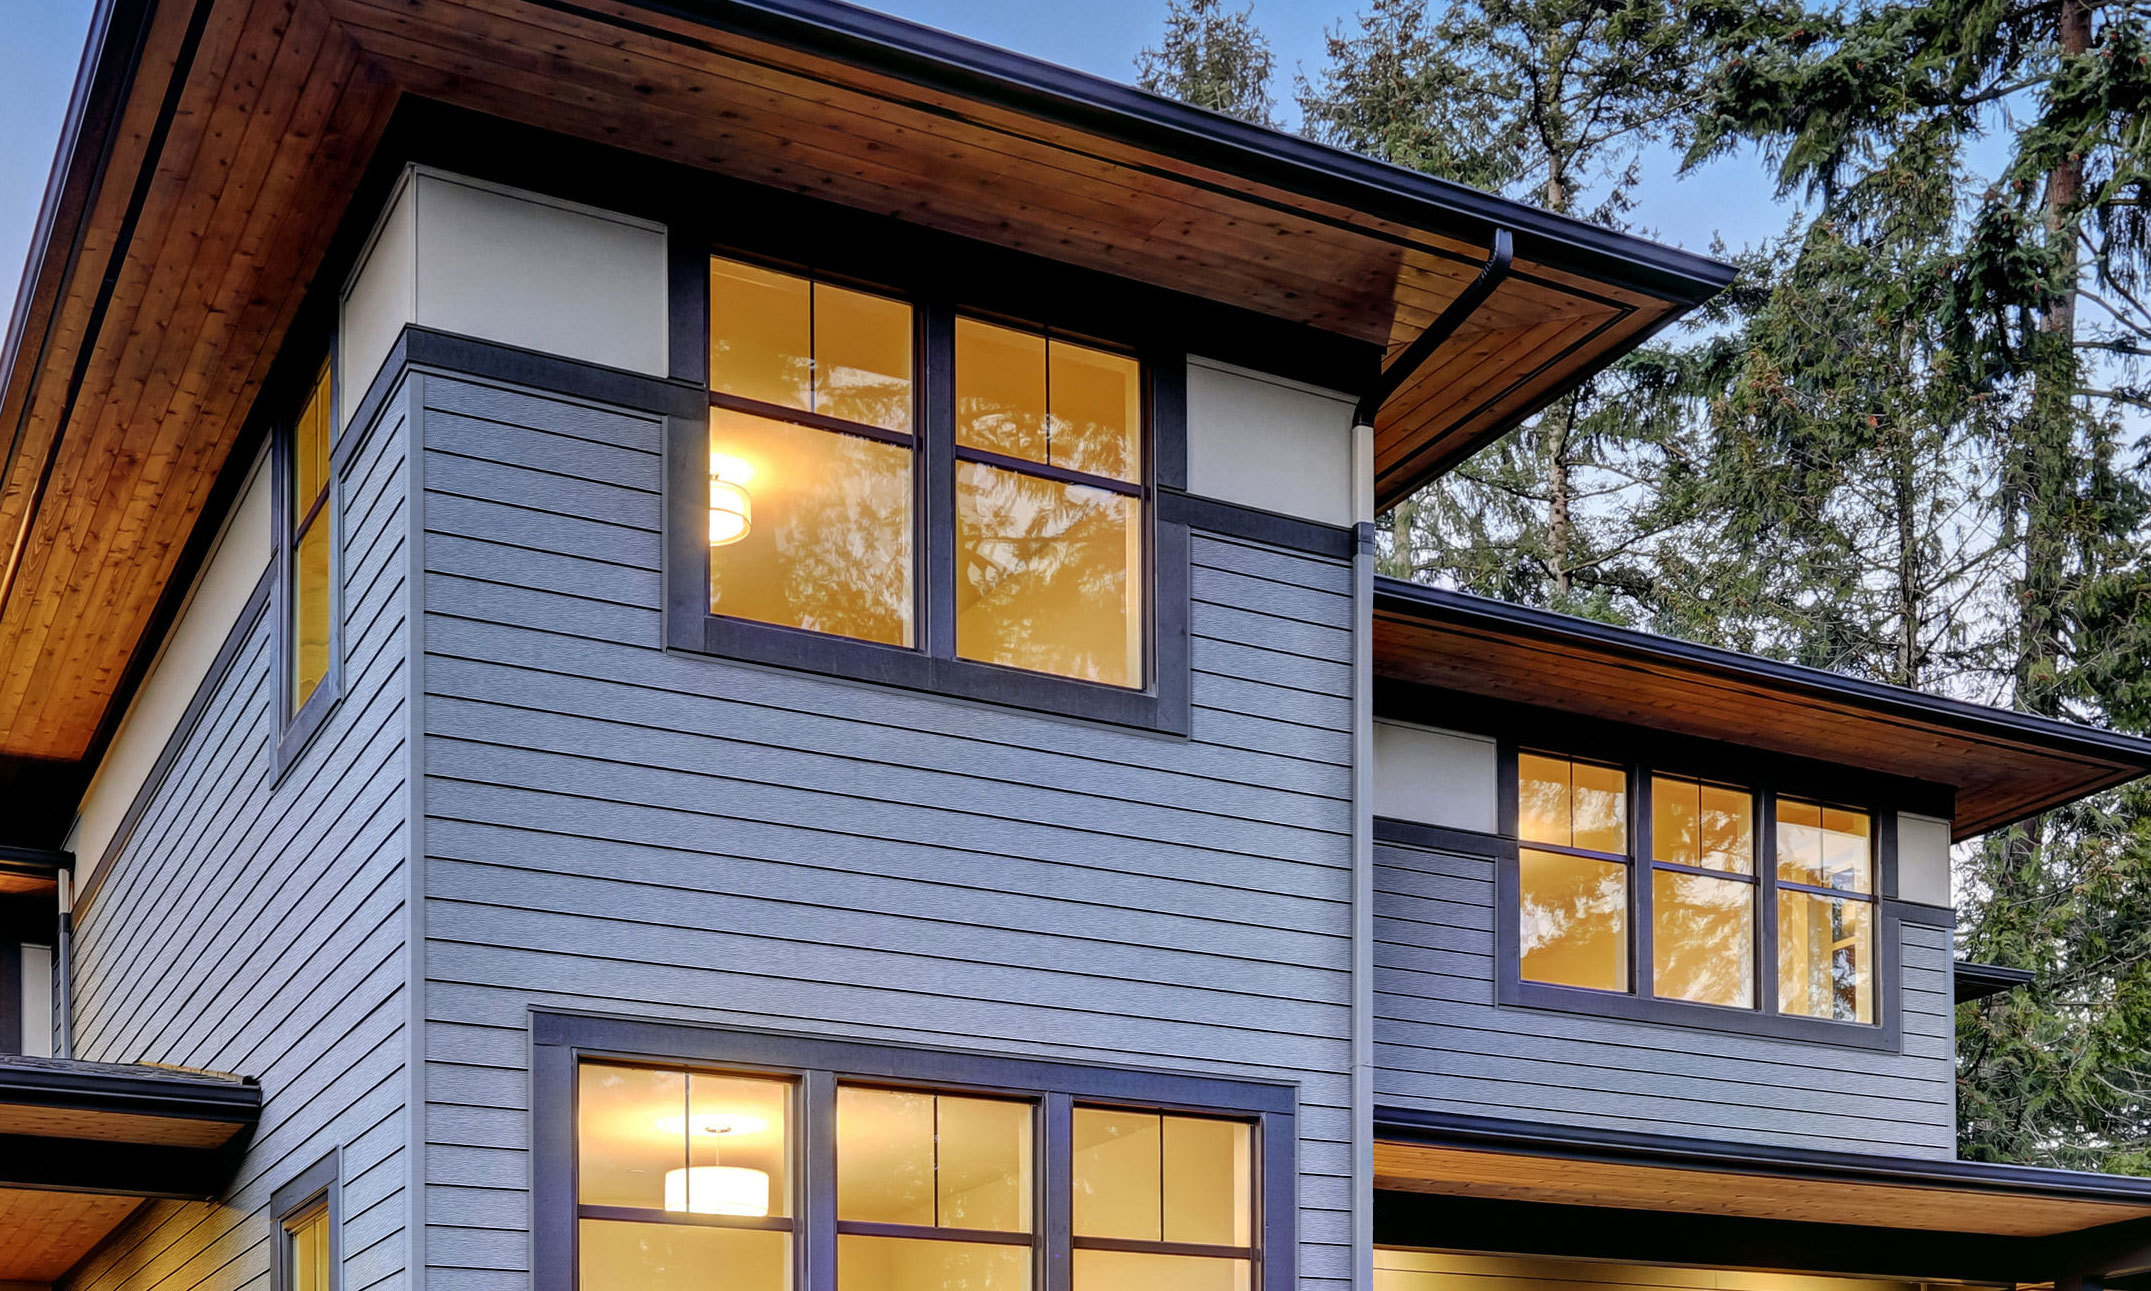 <p><p>We've combined high tech steel and our ultra-durable proprietary SMP coating for the best siding experience. Our latest coating, a silicone polyester, has been enhanced to outperform other coatings for resistance to chalk, fade, corrosion and moisture. Navigator will stand up to damaging UV lights, weather and humidity but can be easily cleaned with just water. </p><p>Keep homes looking new for decades with Navigator's virtually maintenance-free panel that never needs re-painting. Low gloss seamless coil and boxed siding available in 16 on-trend colors to work beautifully on any home type....</p>